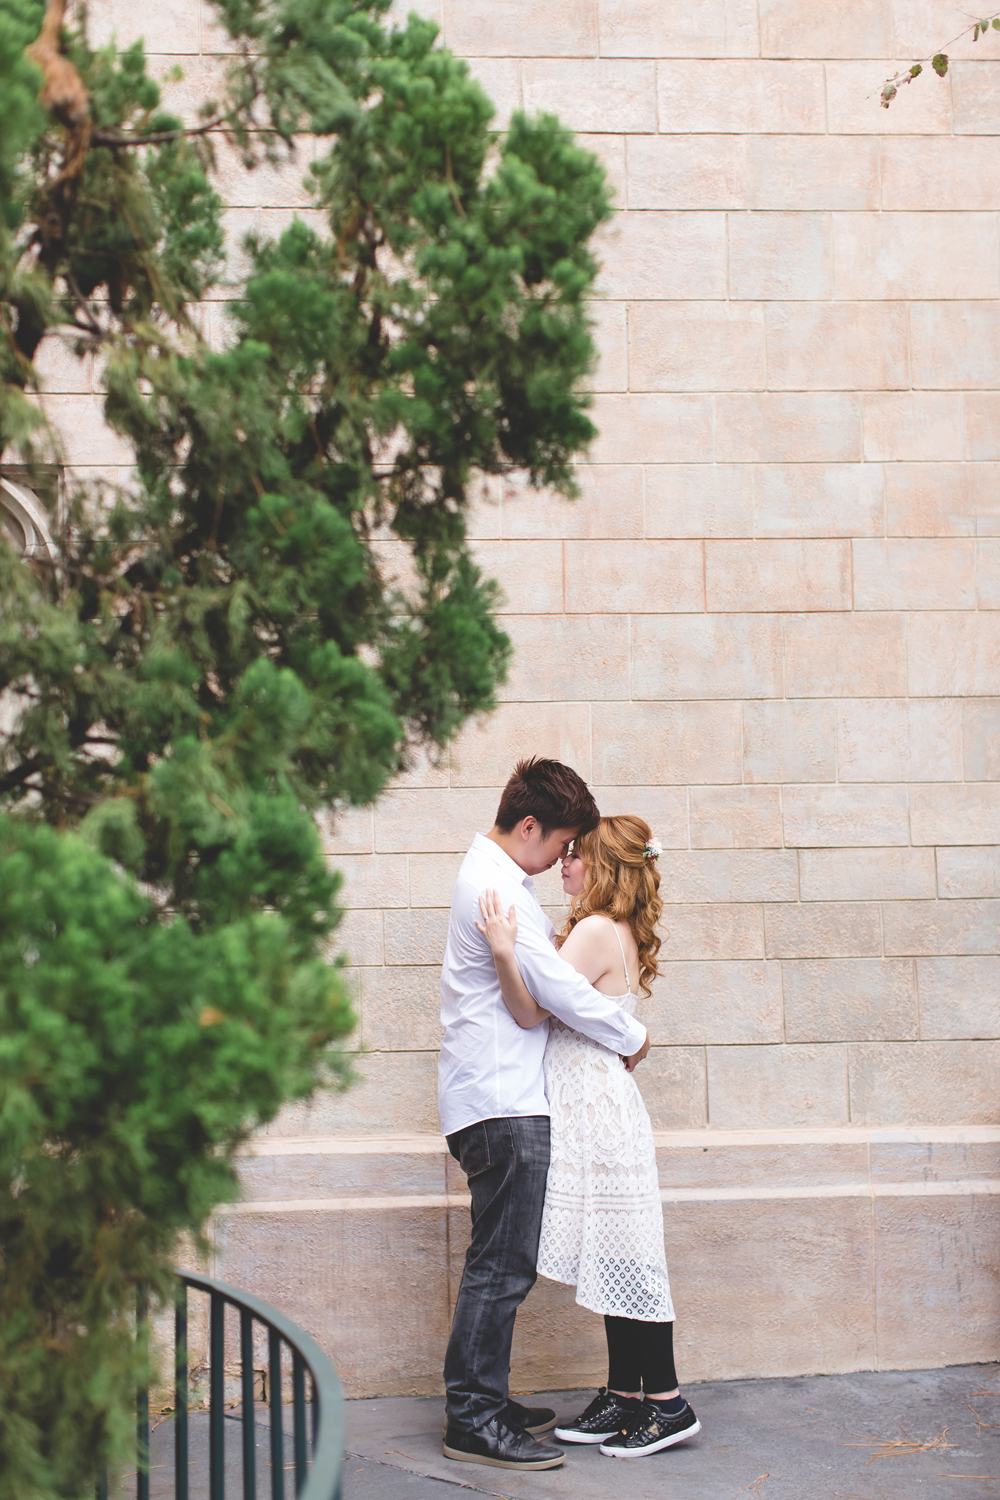 Disney Honeymoon session - Disney Engagement Photos - Disney Wedding Photographer - Destination Orlando Wedding Photographer - Jaime DiOrio (17).jpg